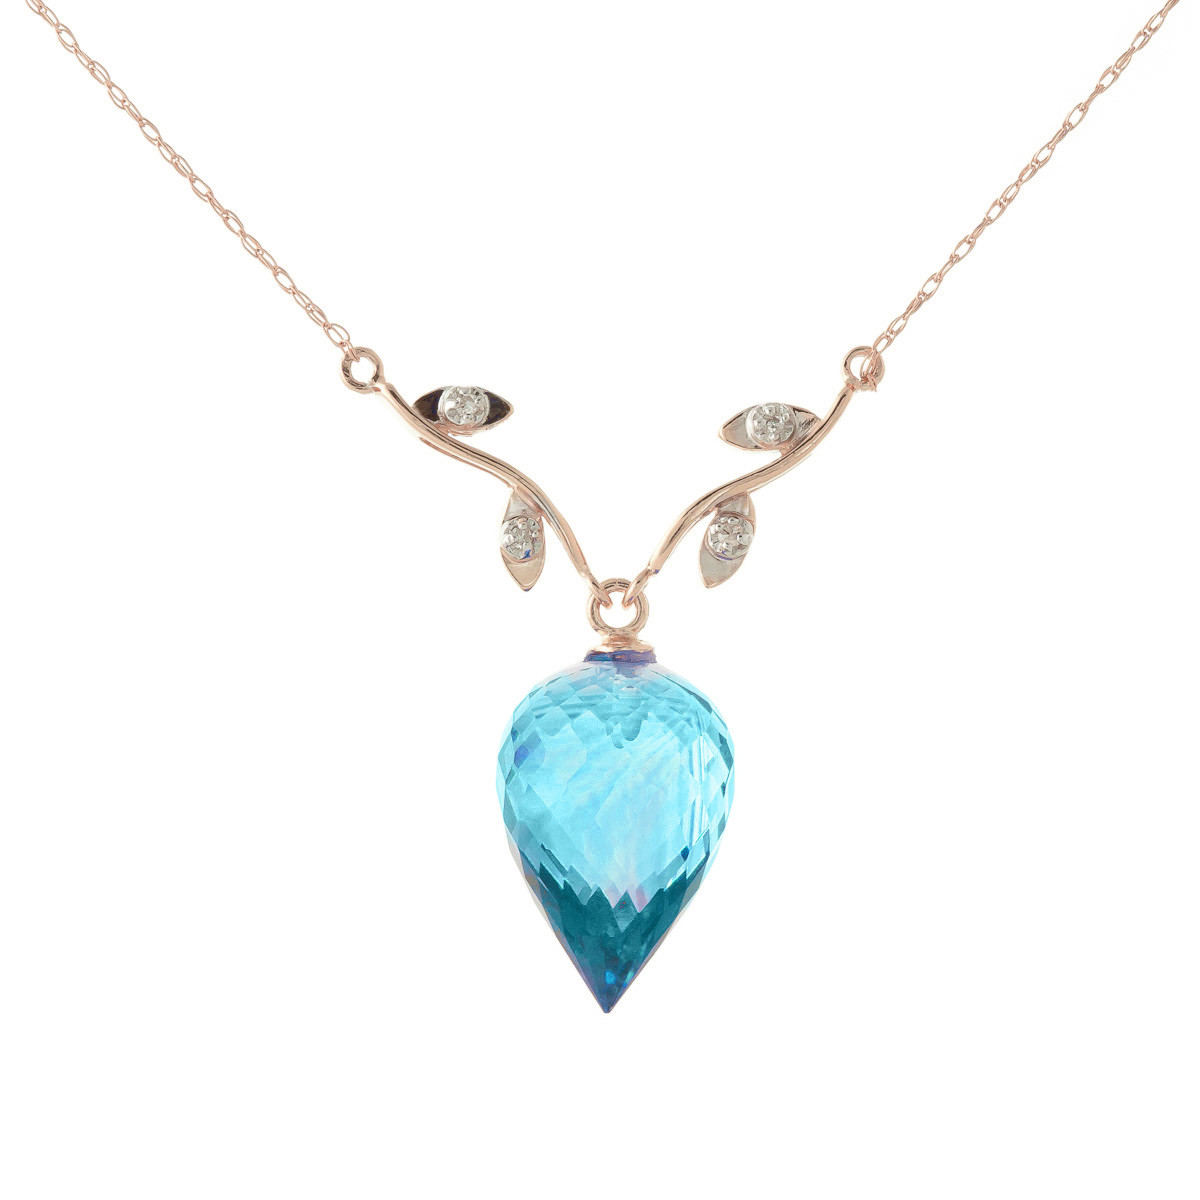 Pointed Briolette Cut Blue Topaz Pendant Necklace 11.27 ctw in 9ct Rose Gold